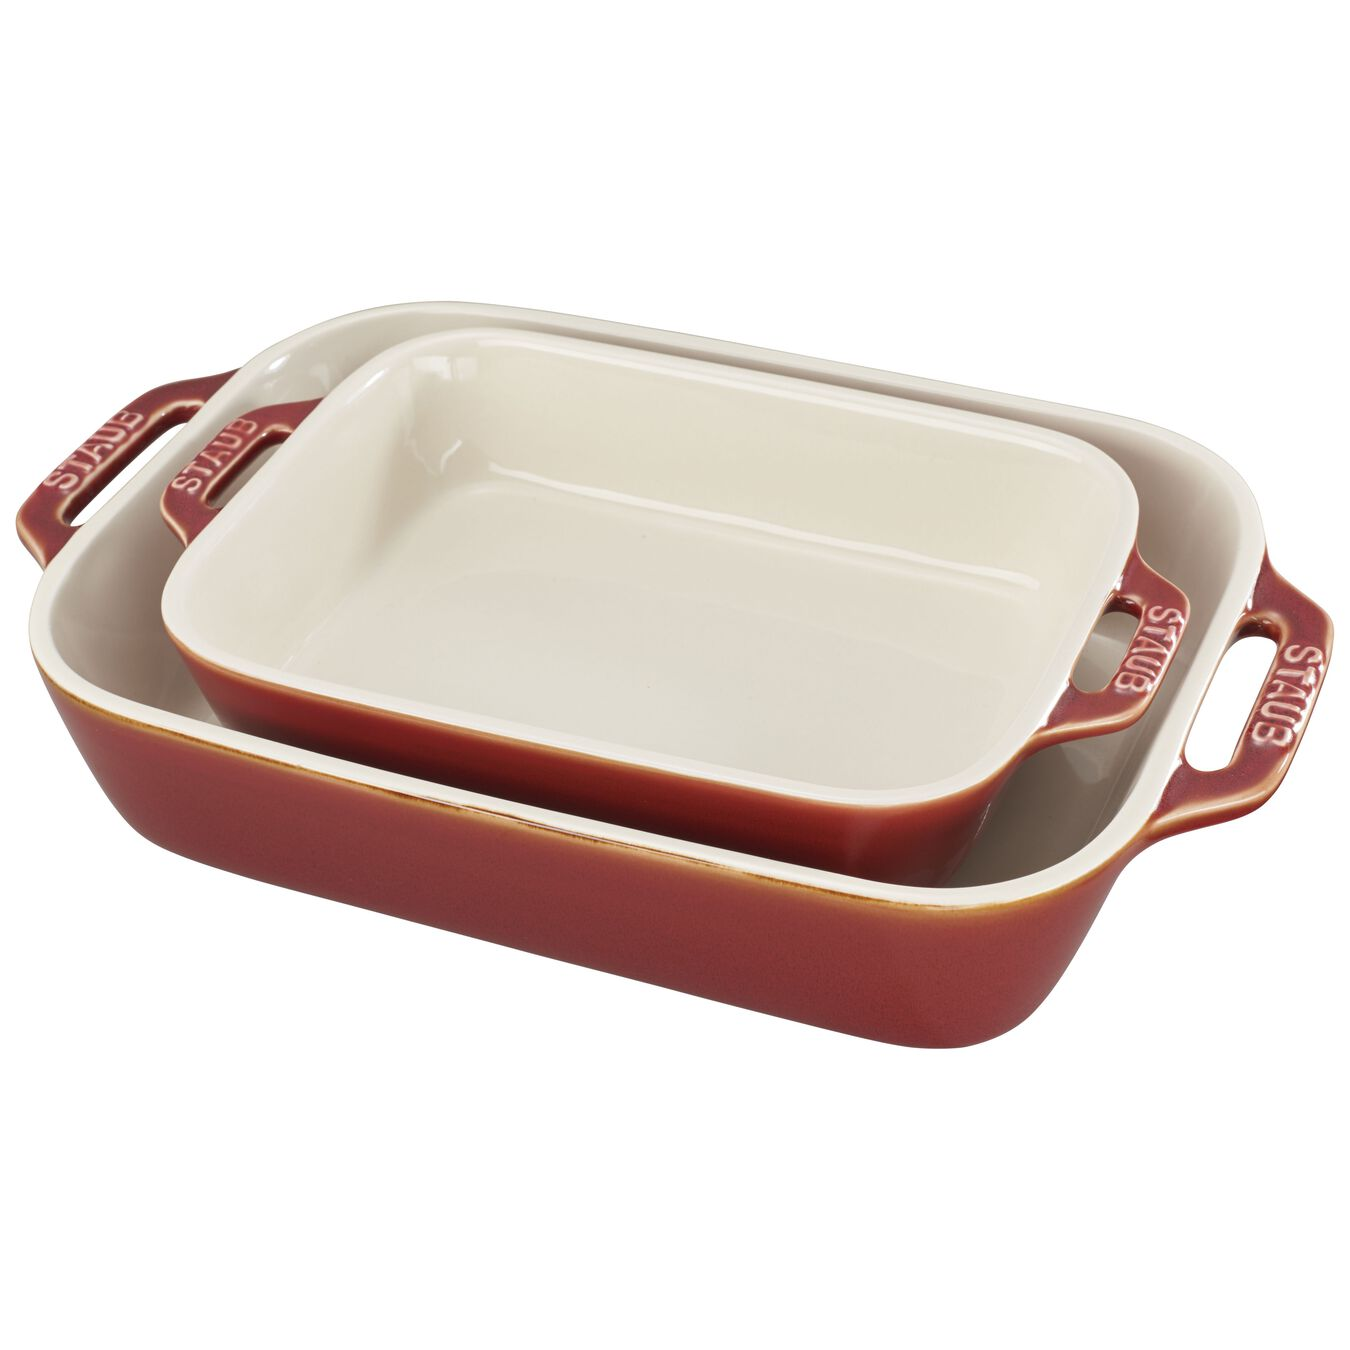 2 Piece square Bakeware set, Red,,large 4